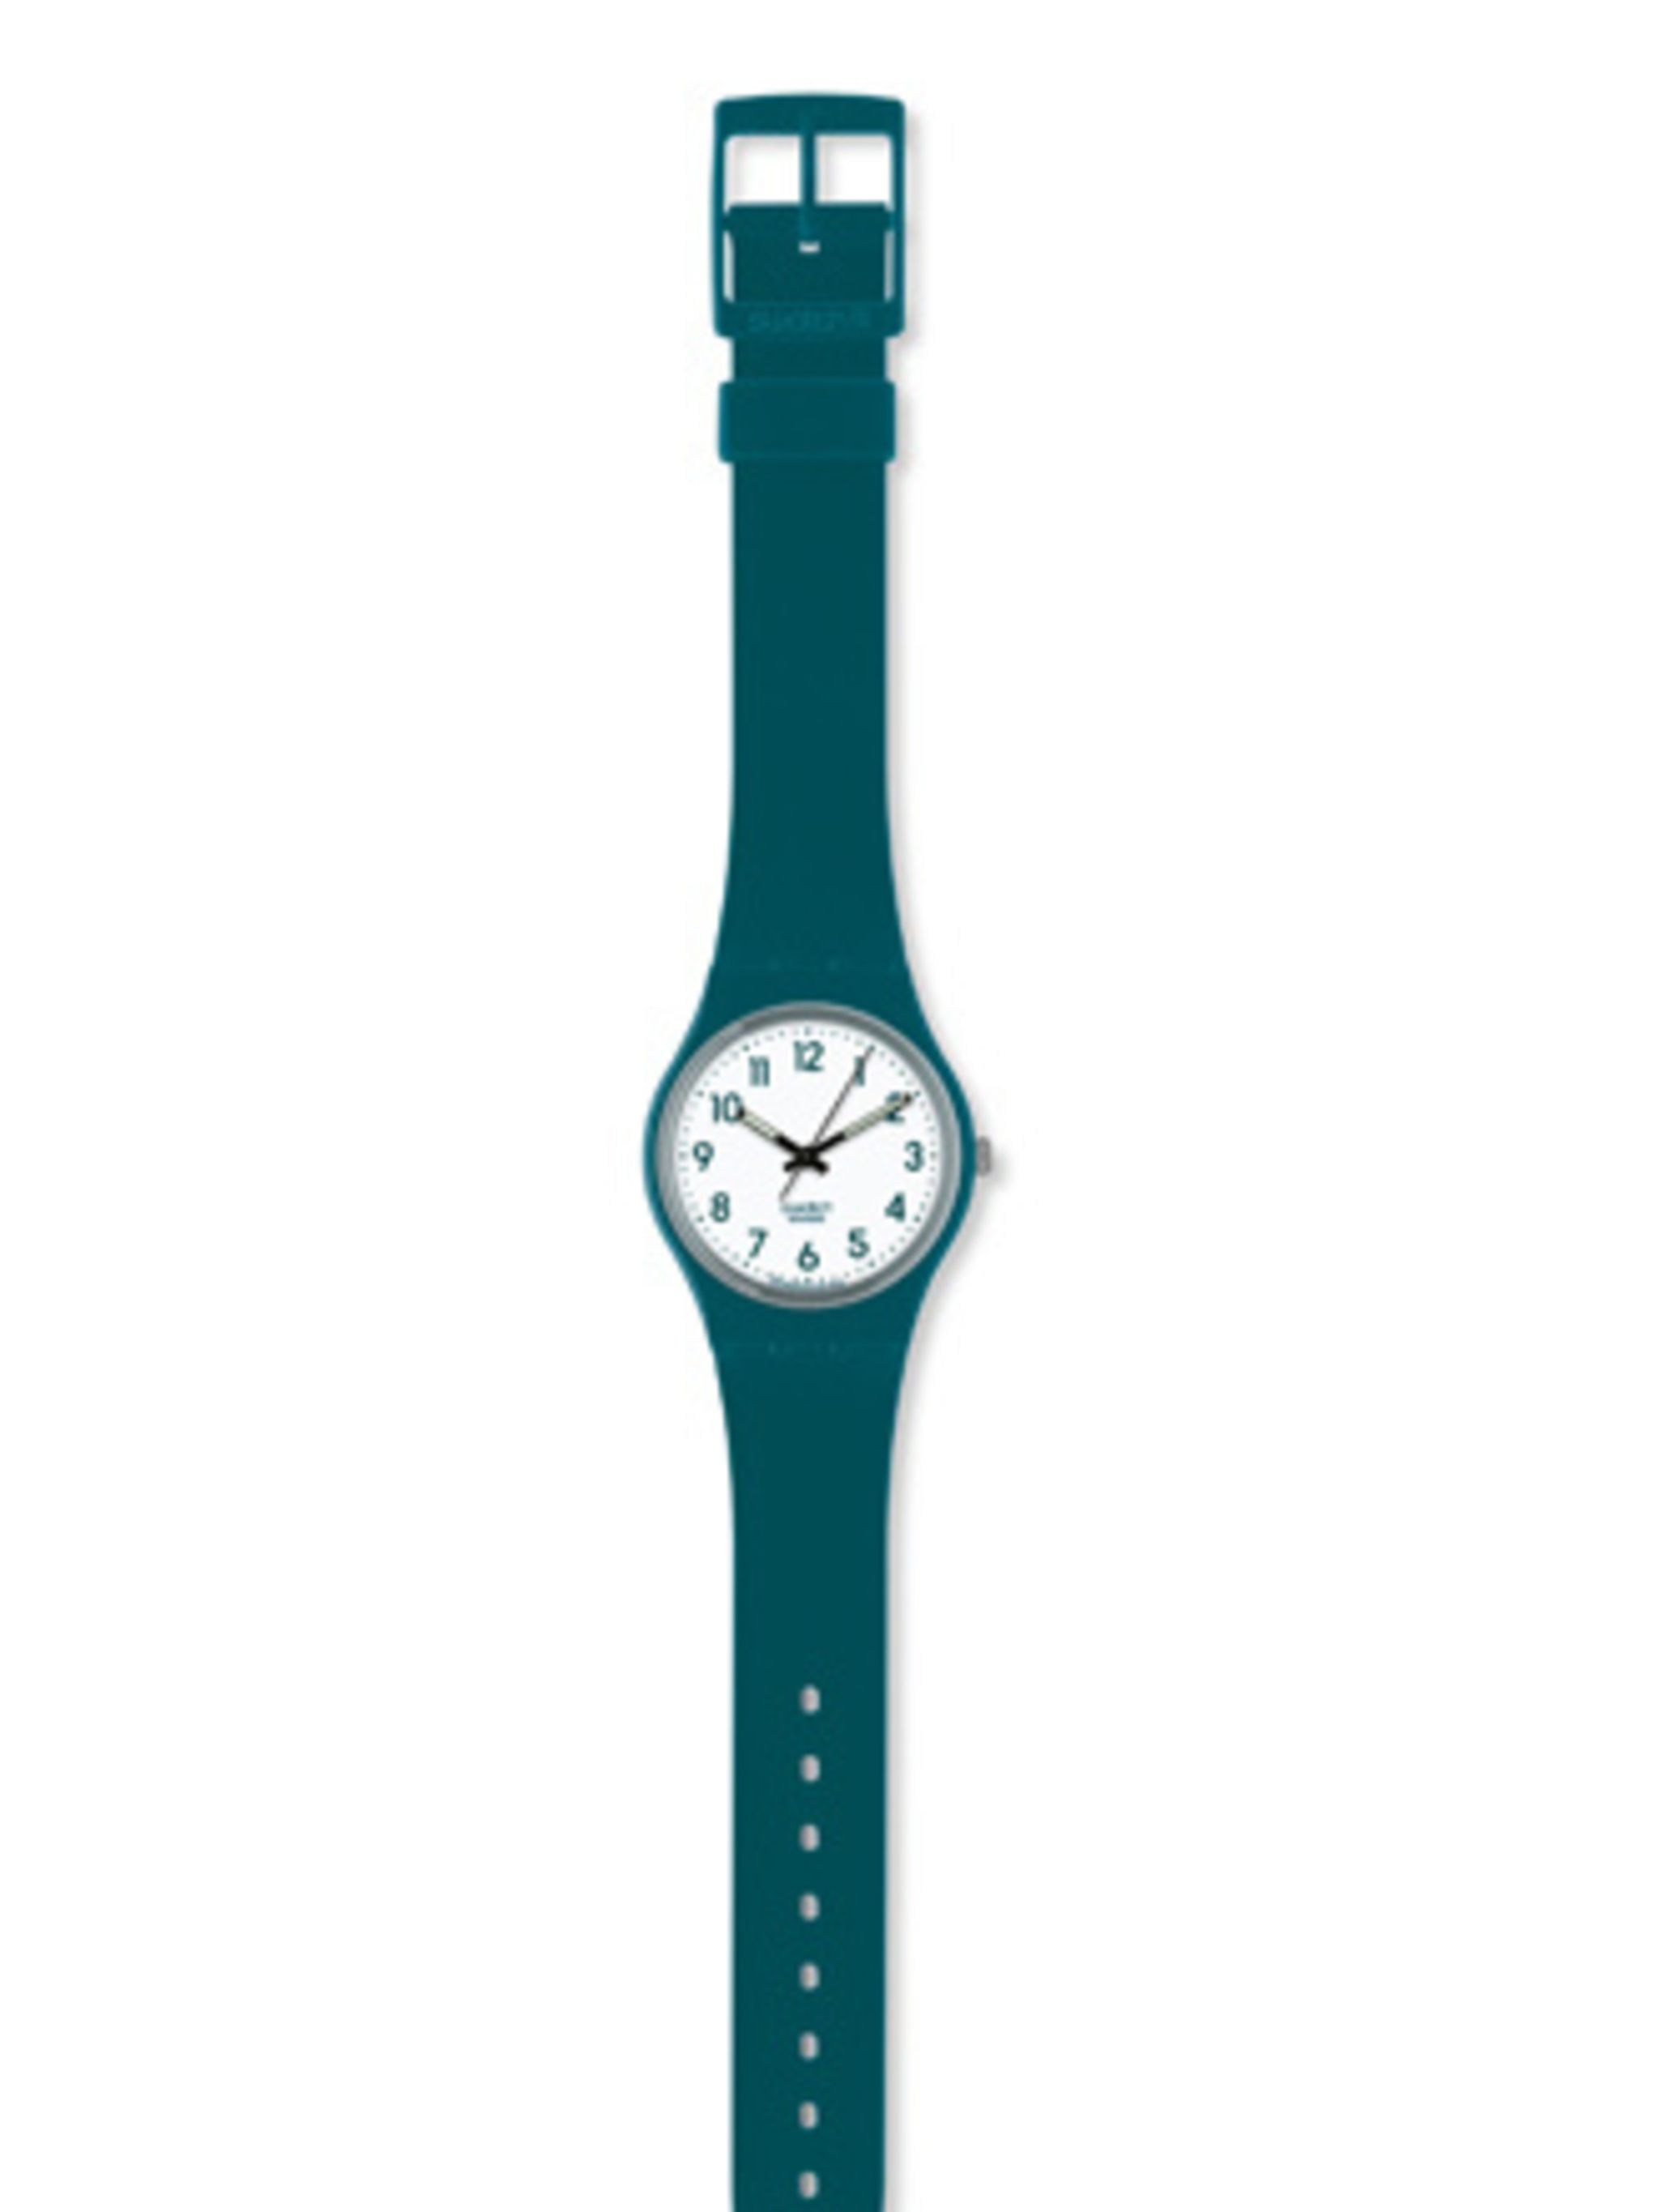 """<p>These new 'Colour Code' watches come in every shade imaginable so you can always match one to your outfit (that explains the name then!)</p><p>Watch, £28.50 by <a href=""""http://eu-shop.swatch.com/eshop/uk/en/colour_codes/matt.aspx"""">Swatch</a></p>"""